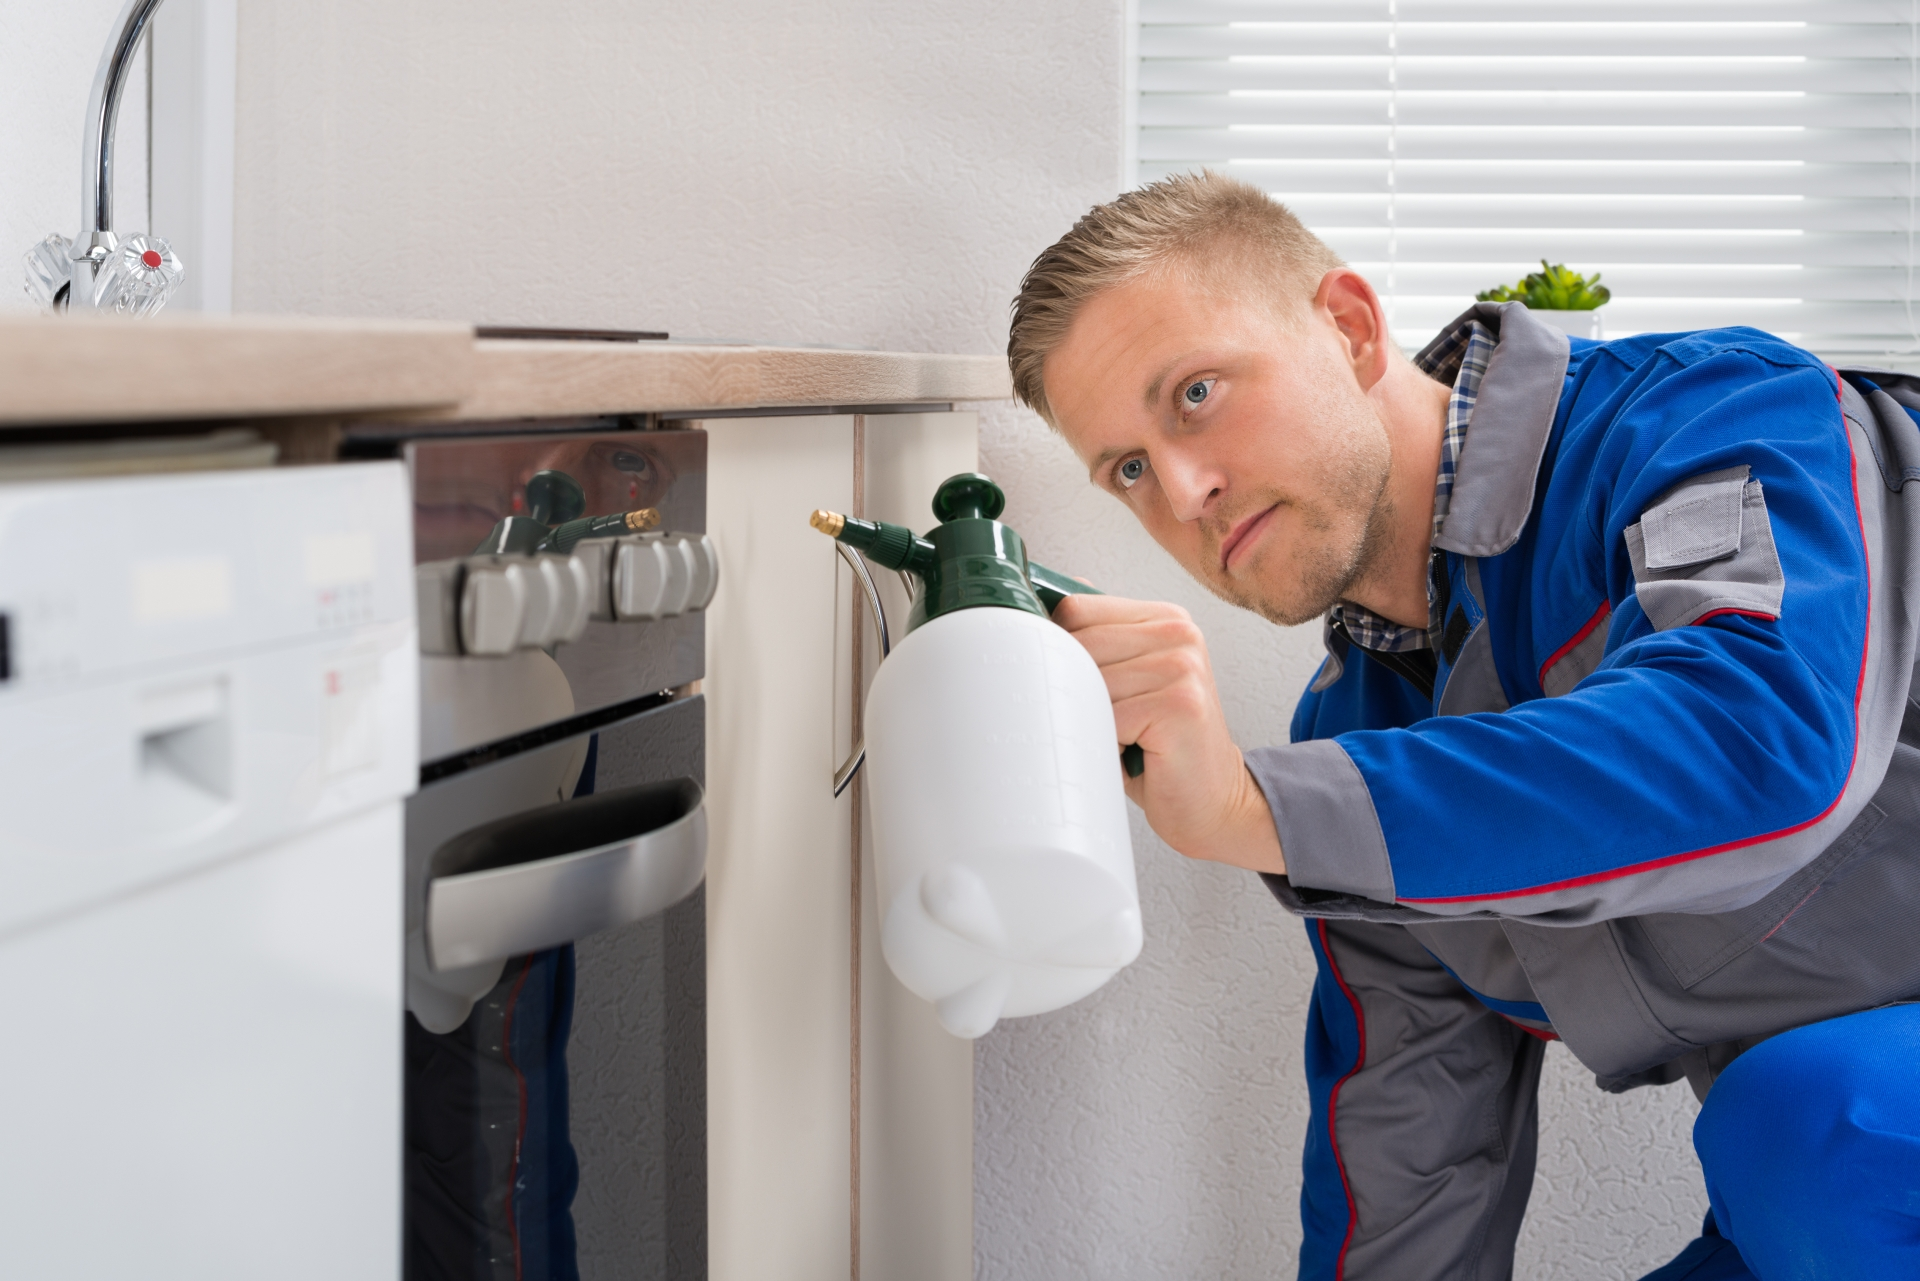 Pest Inspection, Pest Control in South Norwood, SE25. Call Now 020 8166 9746